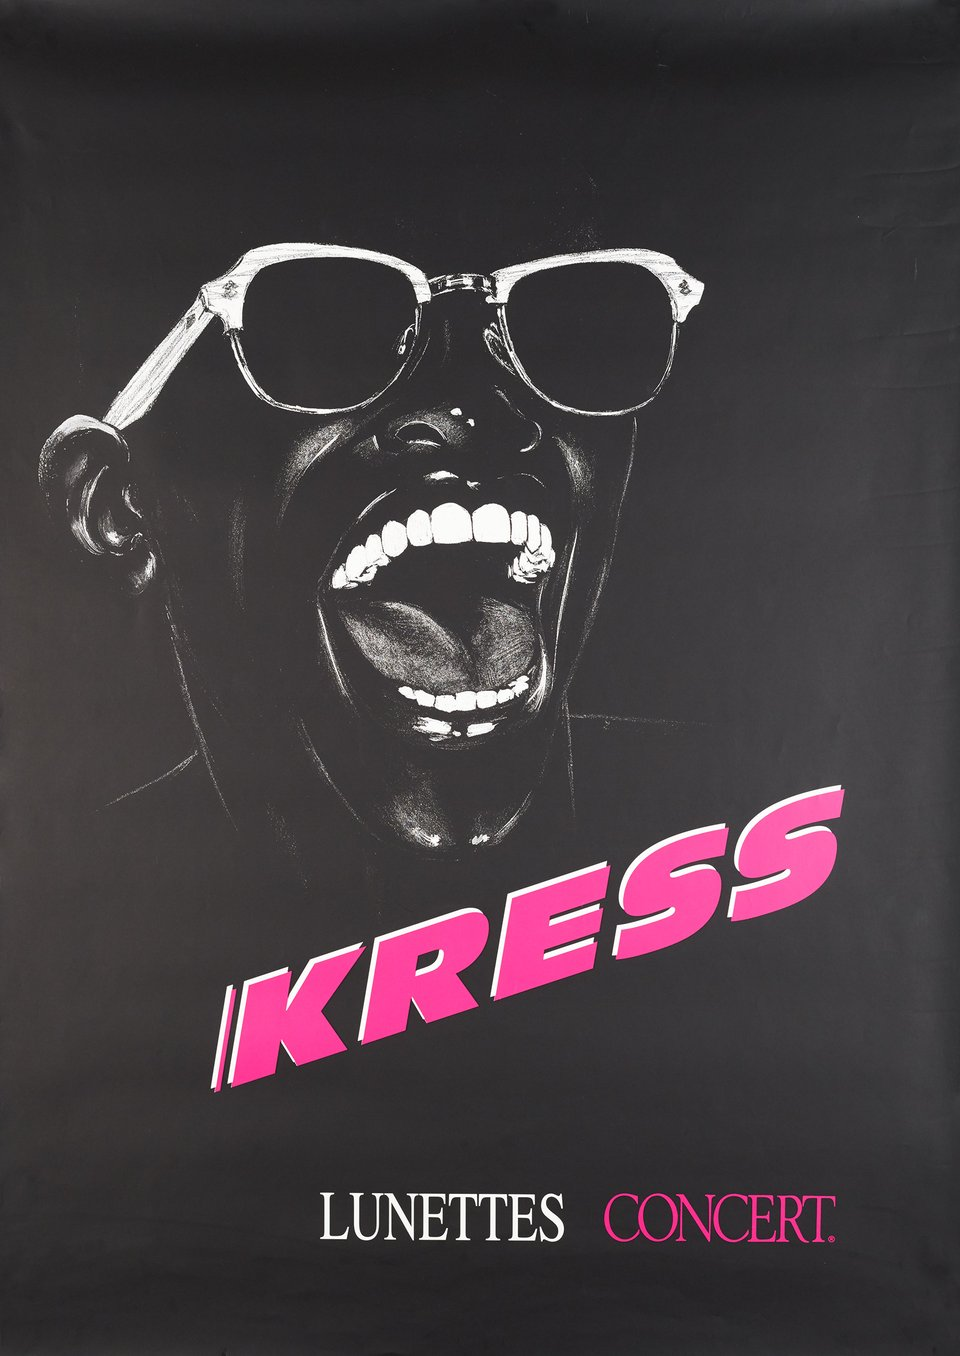 Kress, Lunettes Concert – Affiche ancienne –  ANONYME – 1995